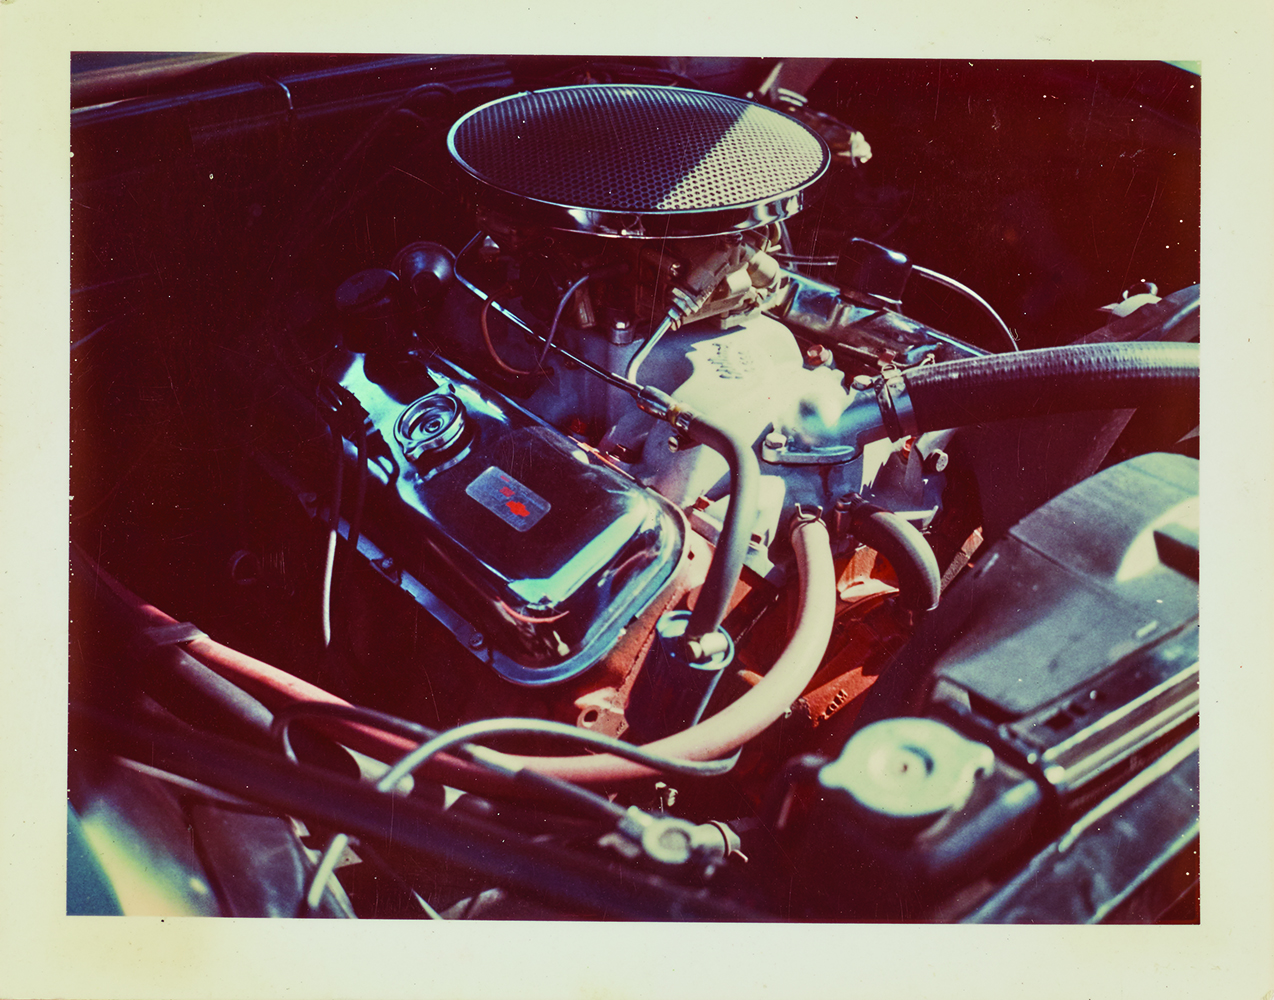 http://www.davidrowan.org/files/gimgs/53_engine.jpg